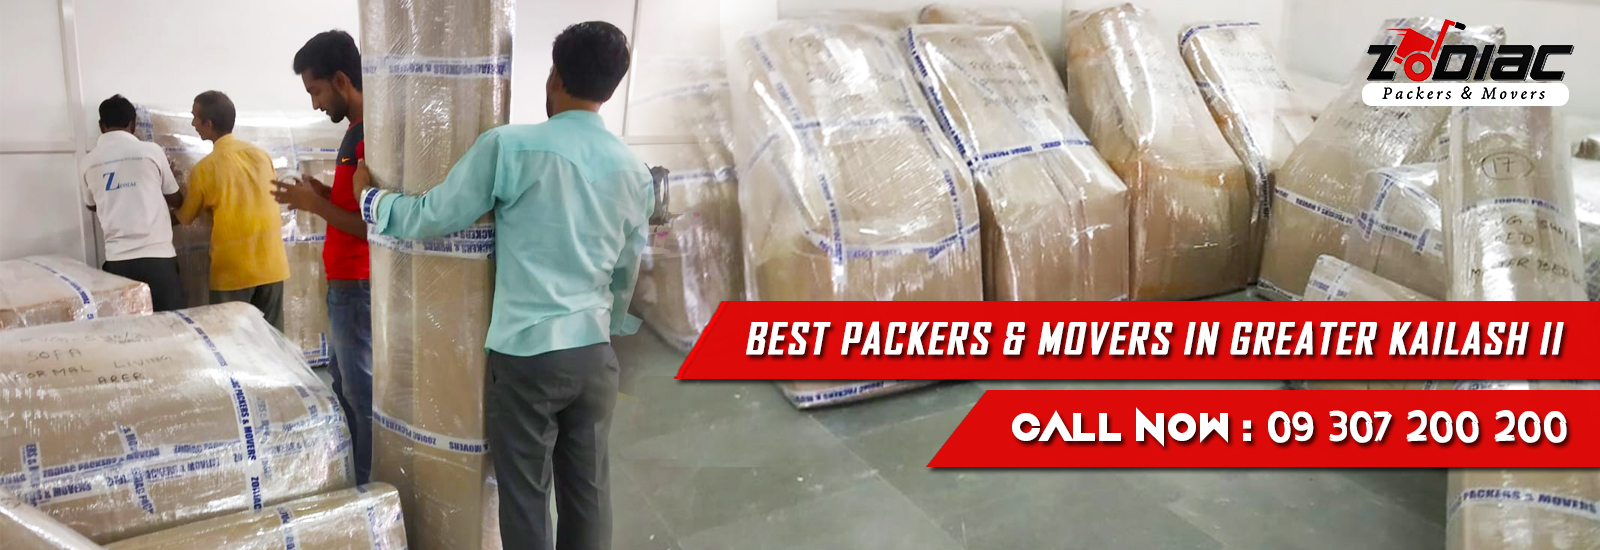 Packers and Movers in Greater Kailash II